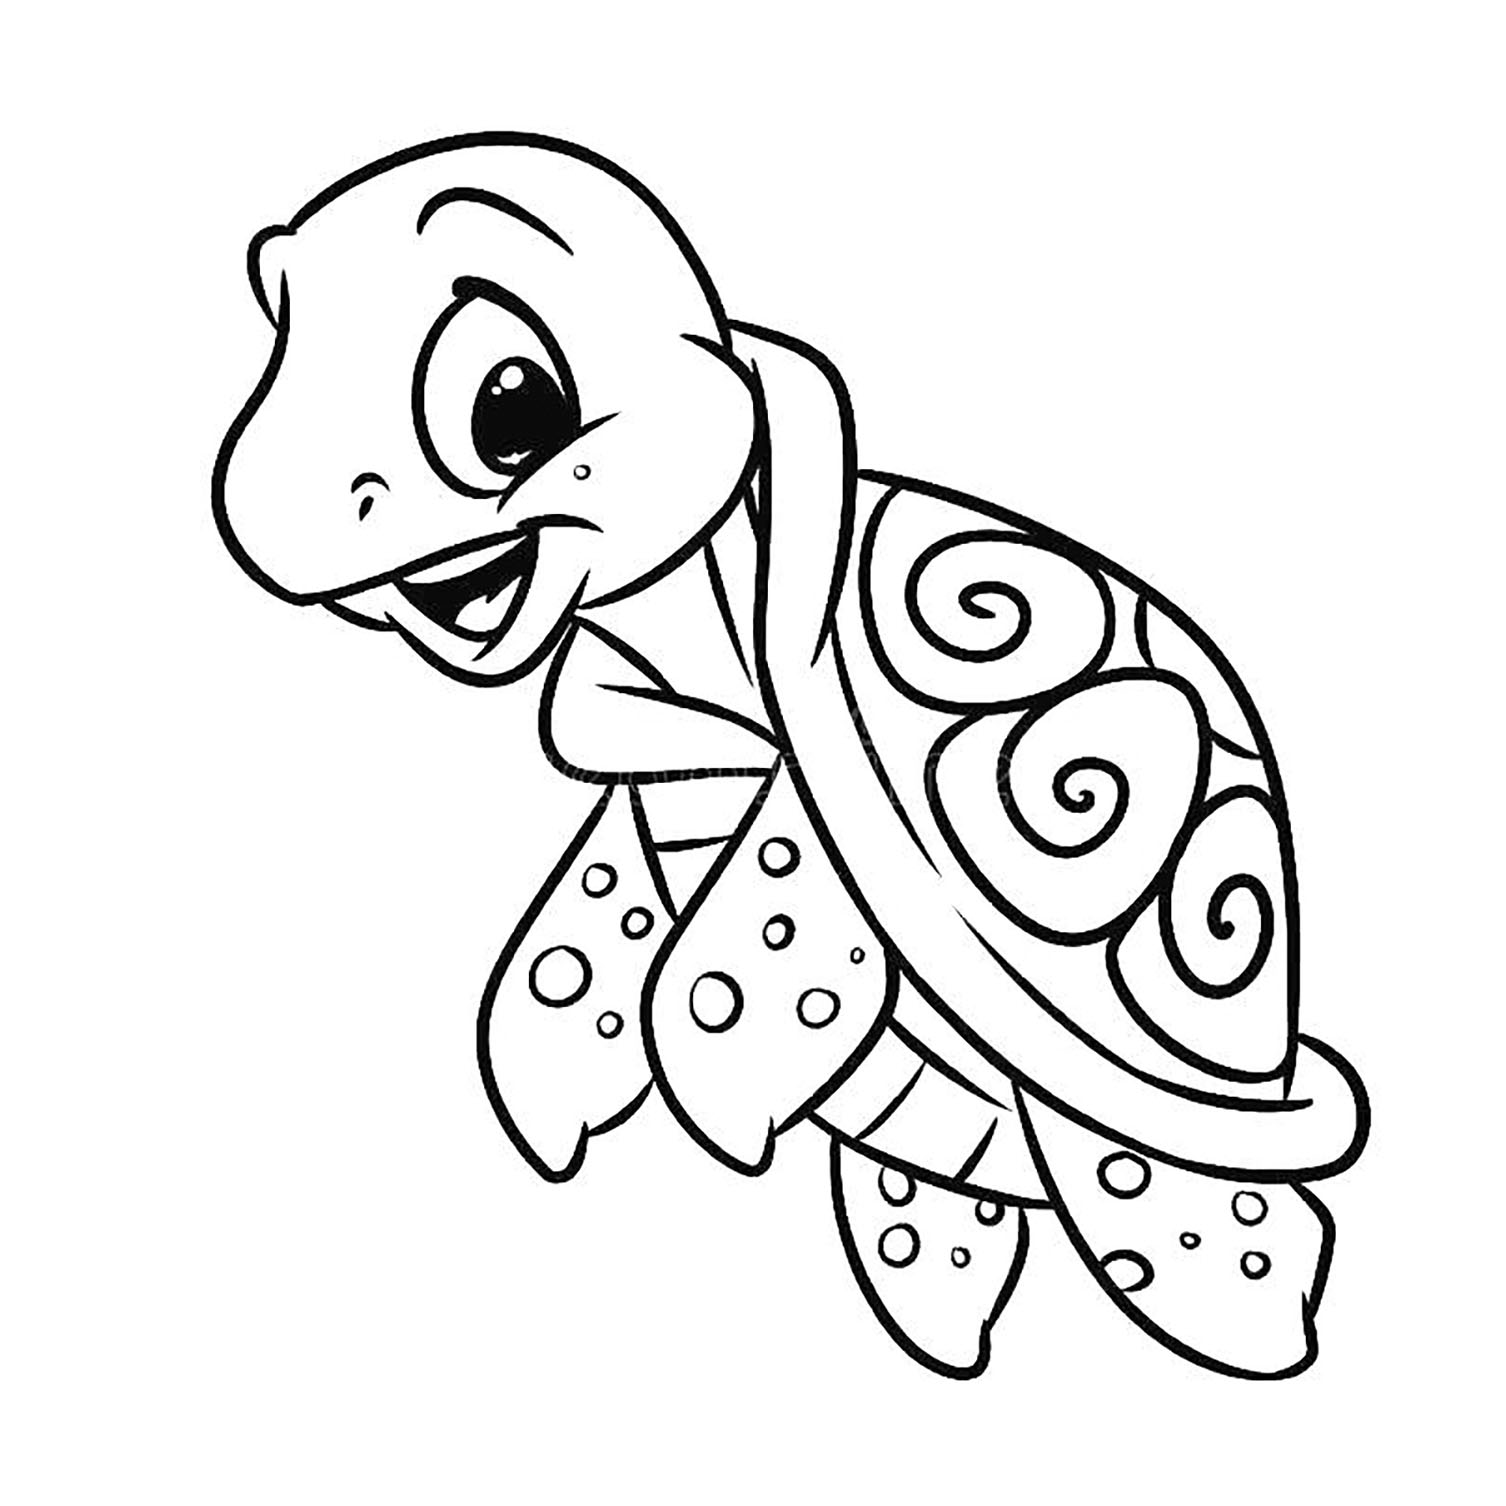 sea turtle for coloring turtles to print turtles kids coloring pages coloring turtle for sea